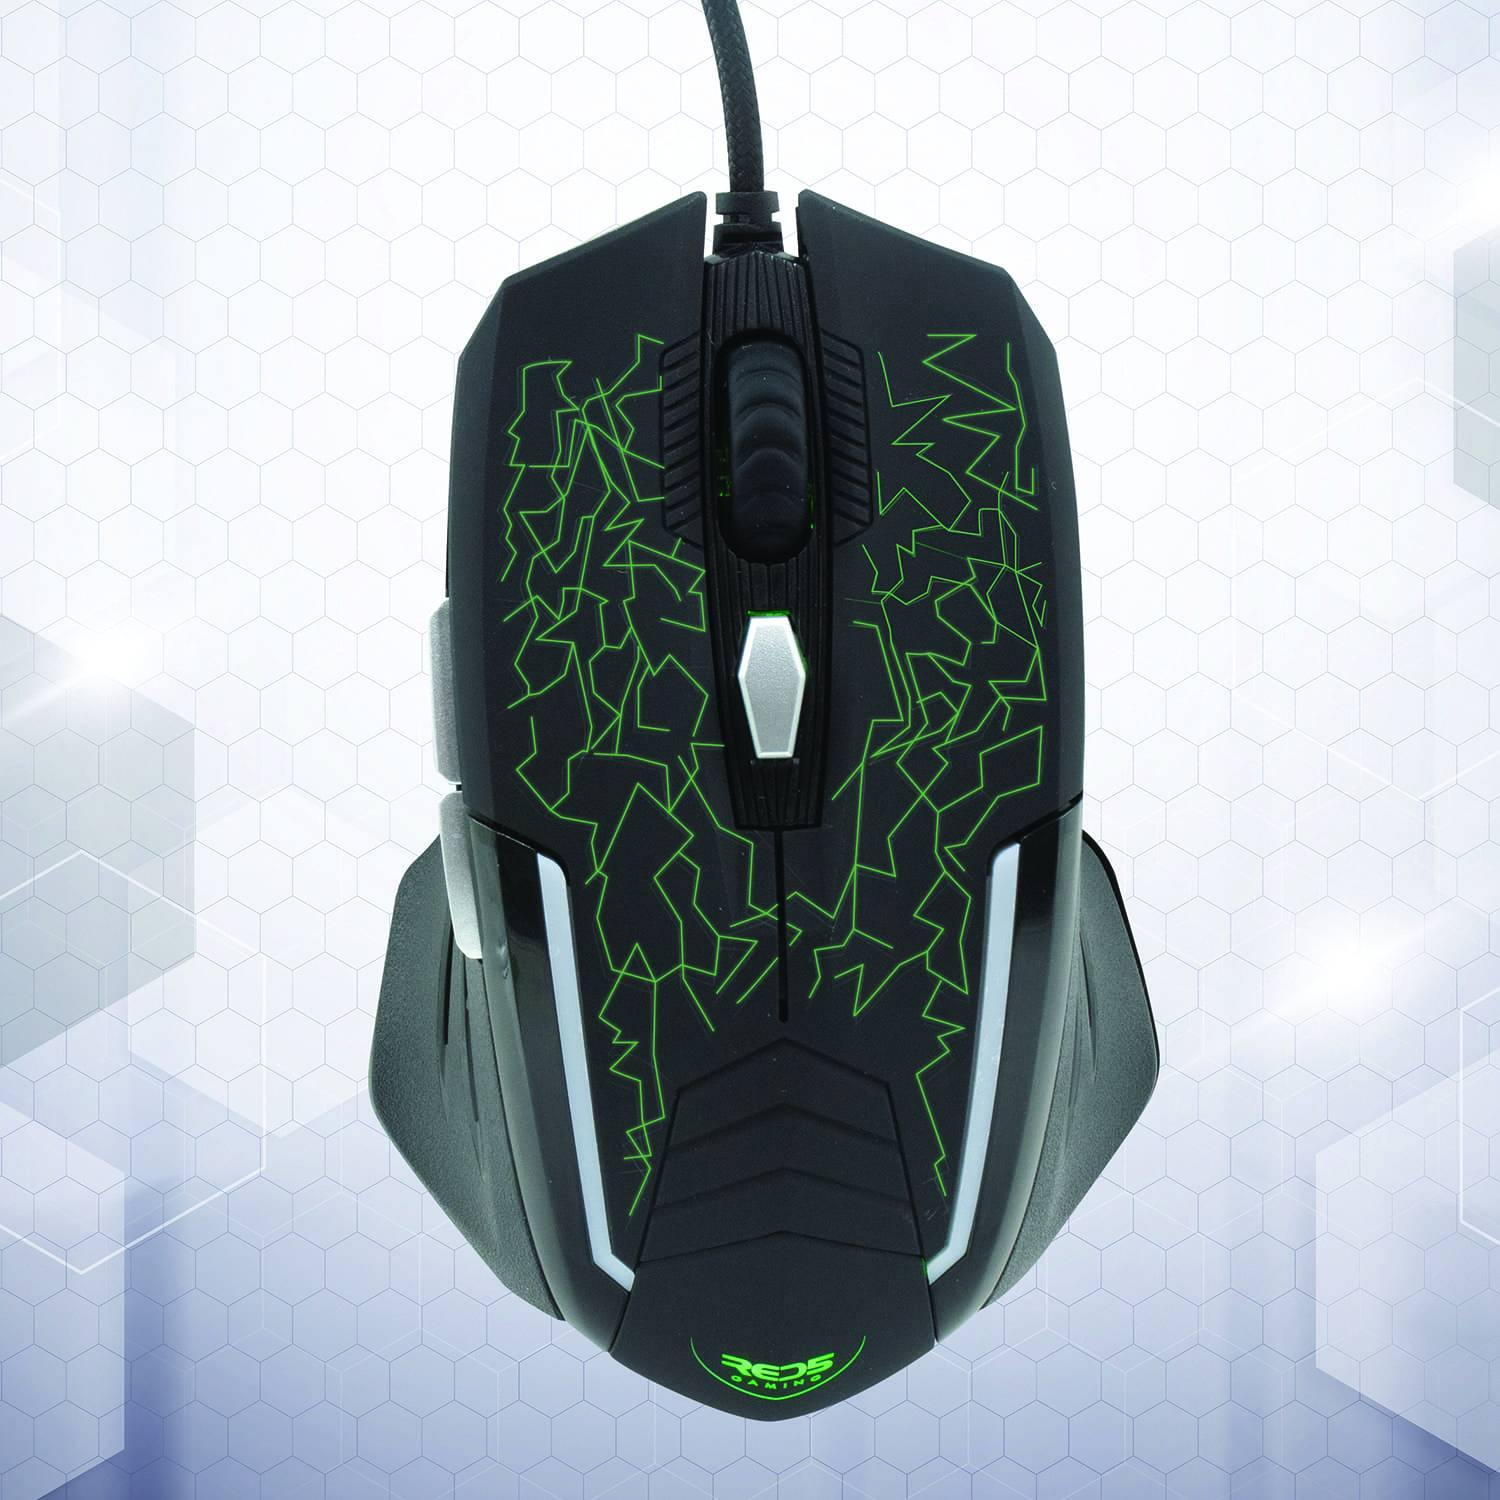 RED5 Comet Gaming Mouse-2